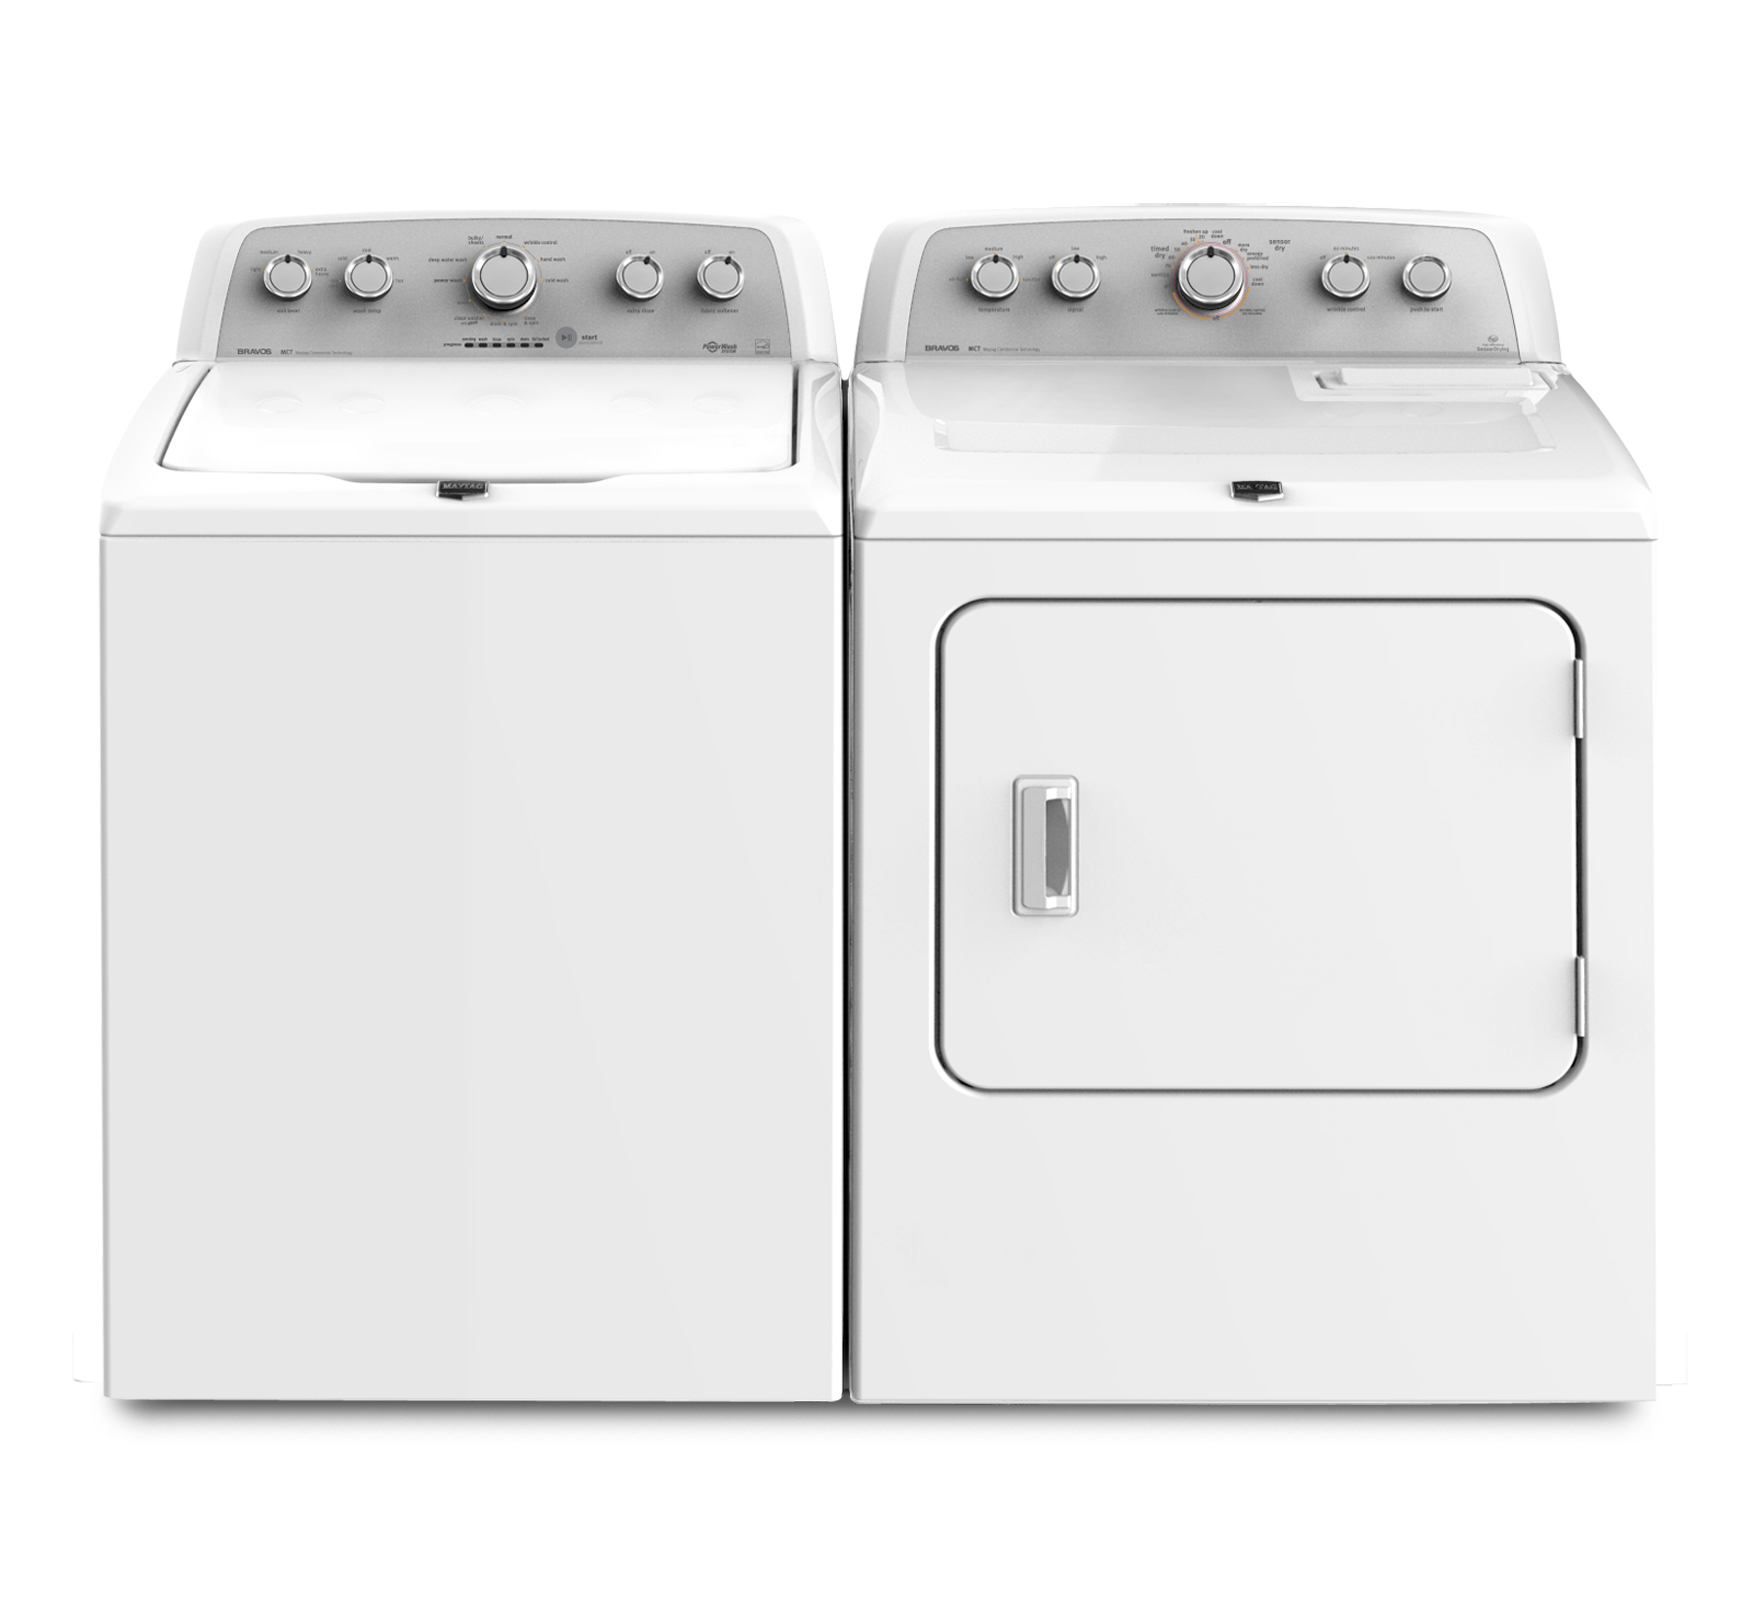 Maytag 3.8 cu. ft. Bravos X™ Top-Load Washer w/ Power Wash® System - White